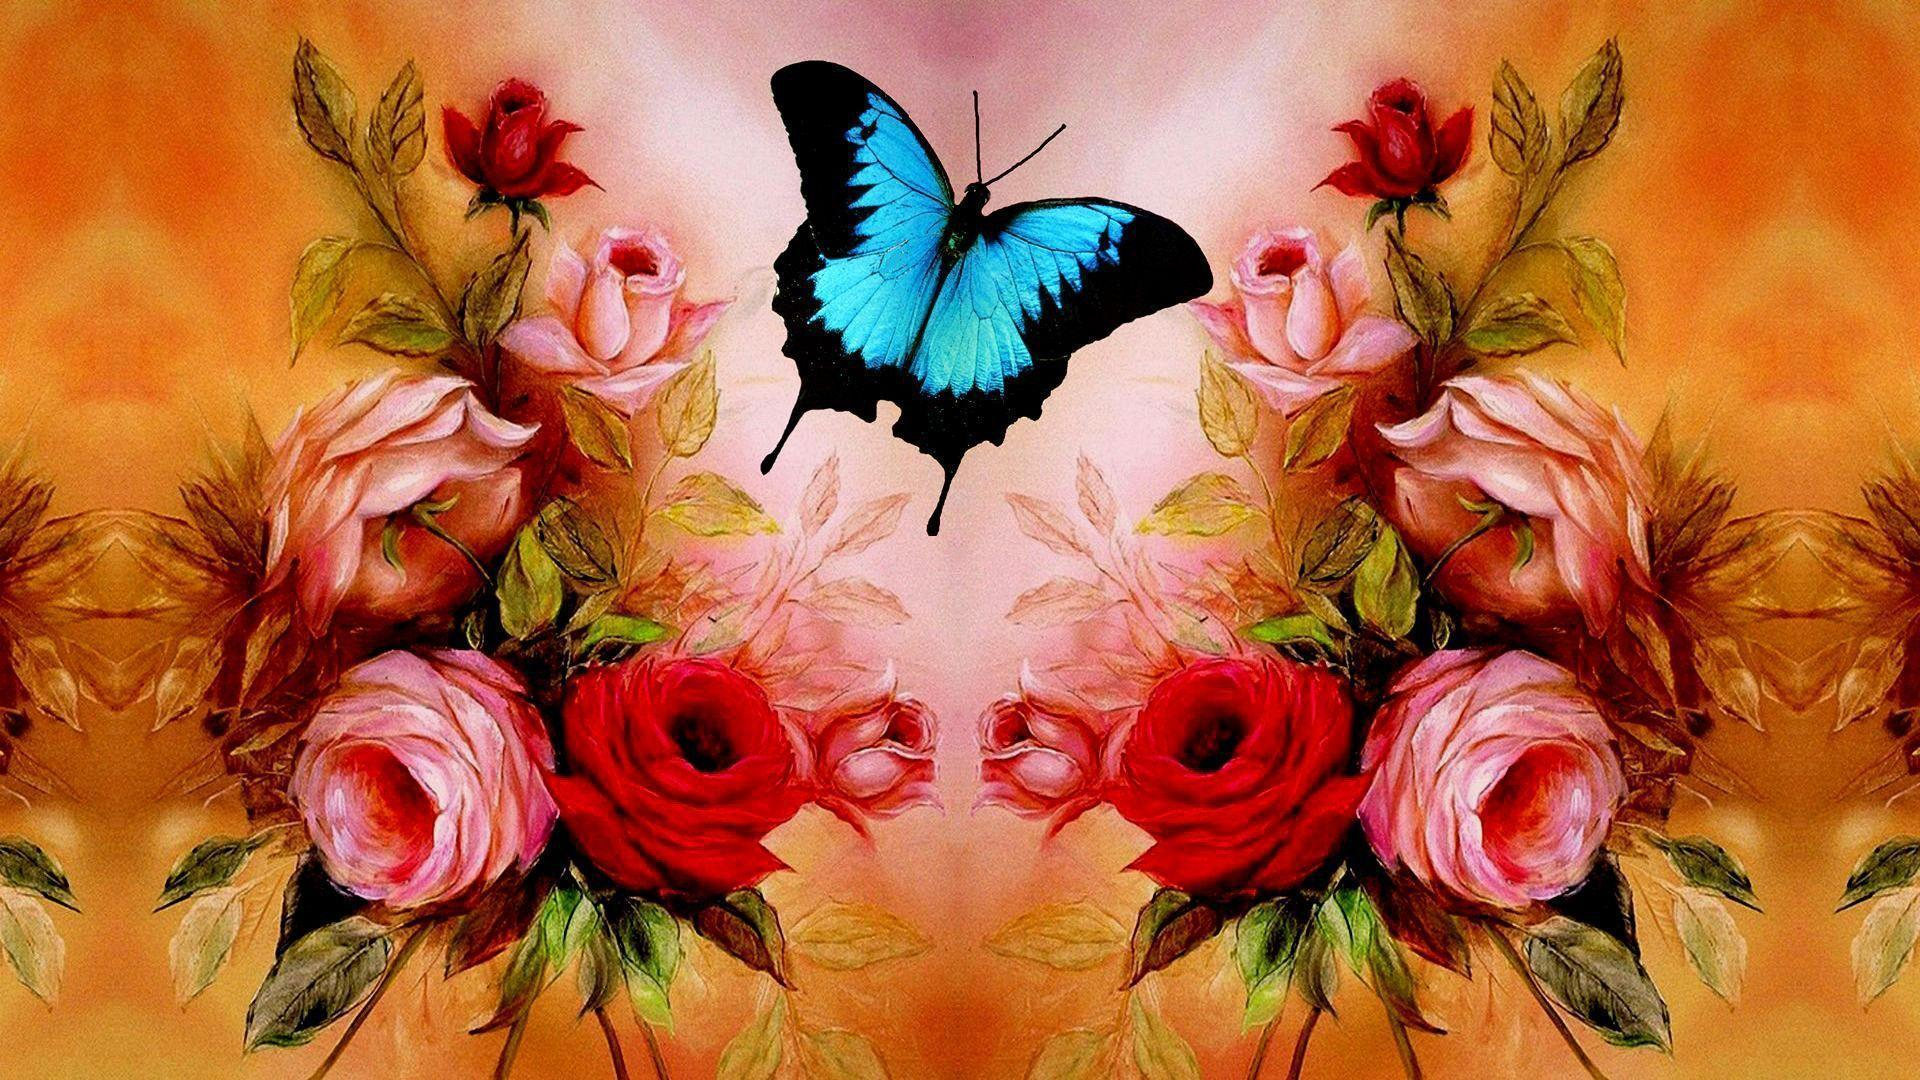 Valentine's day Wallpaper-Butterfly Roses Wallpapers